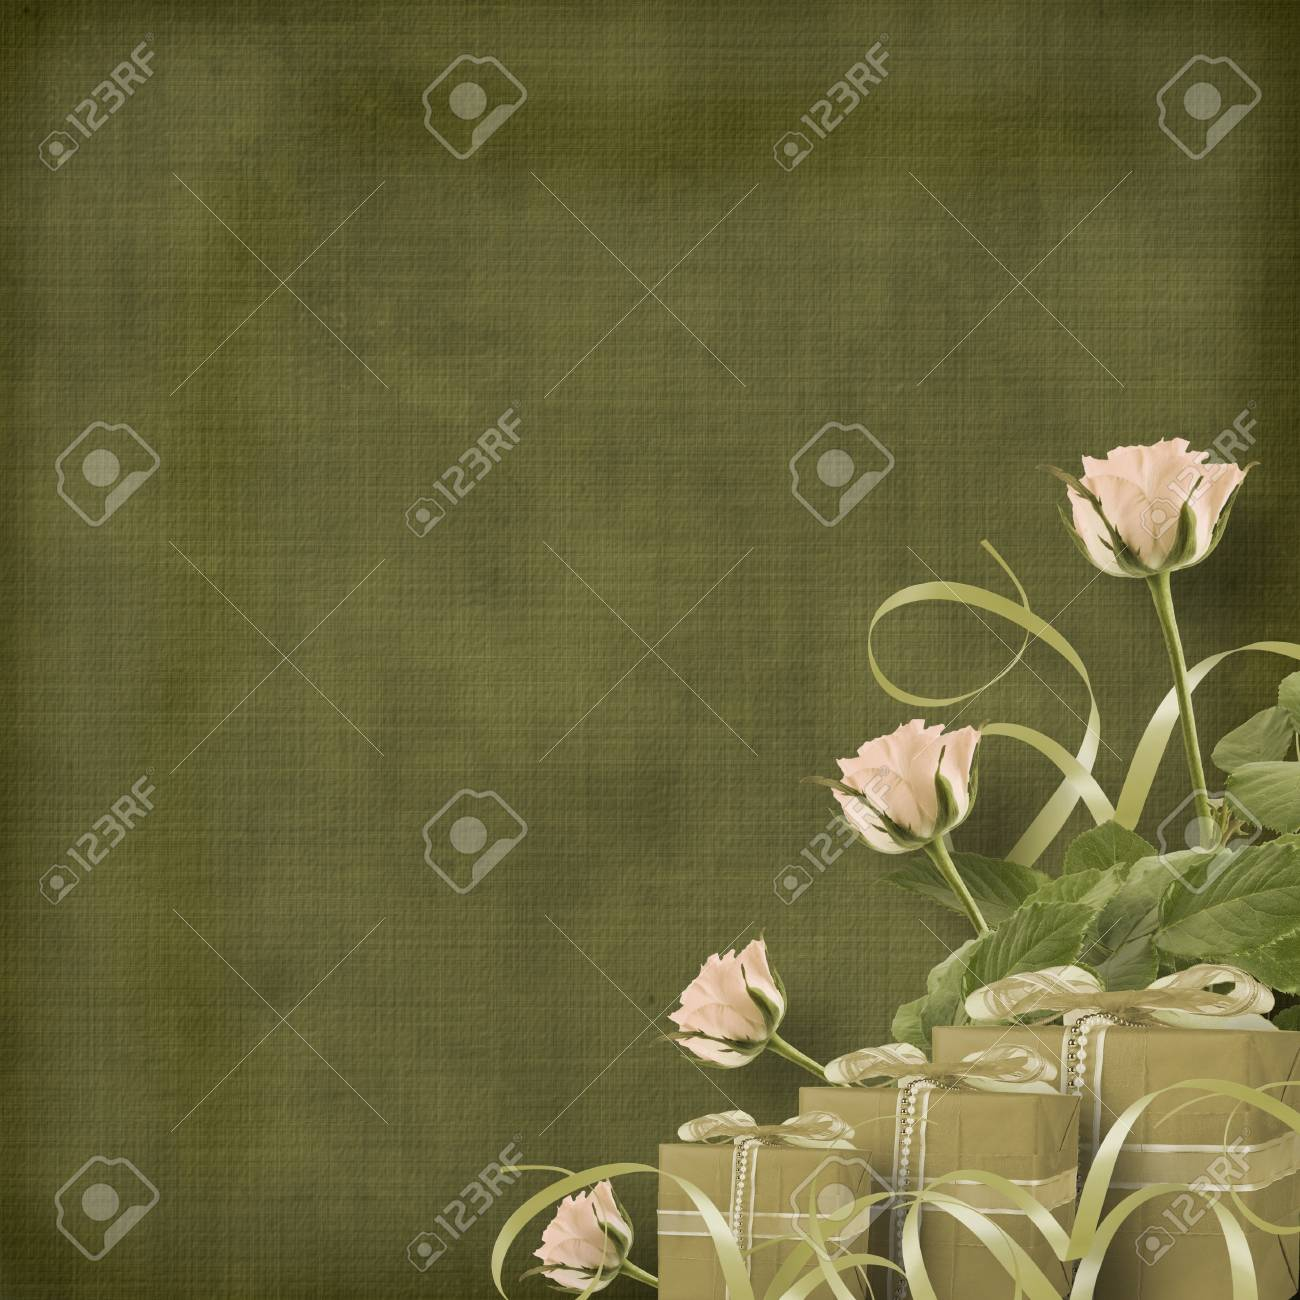 Vintage postcard for congratulation with roses and gifts Stock Photo - 12664652